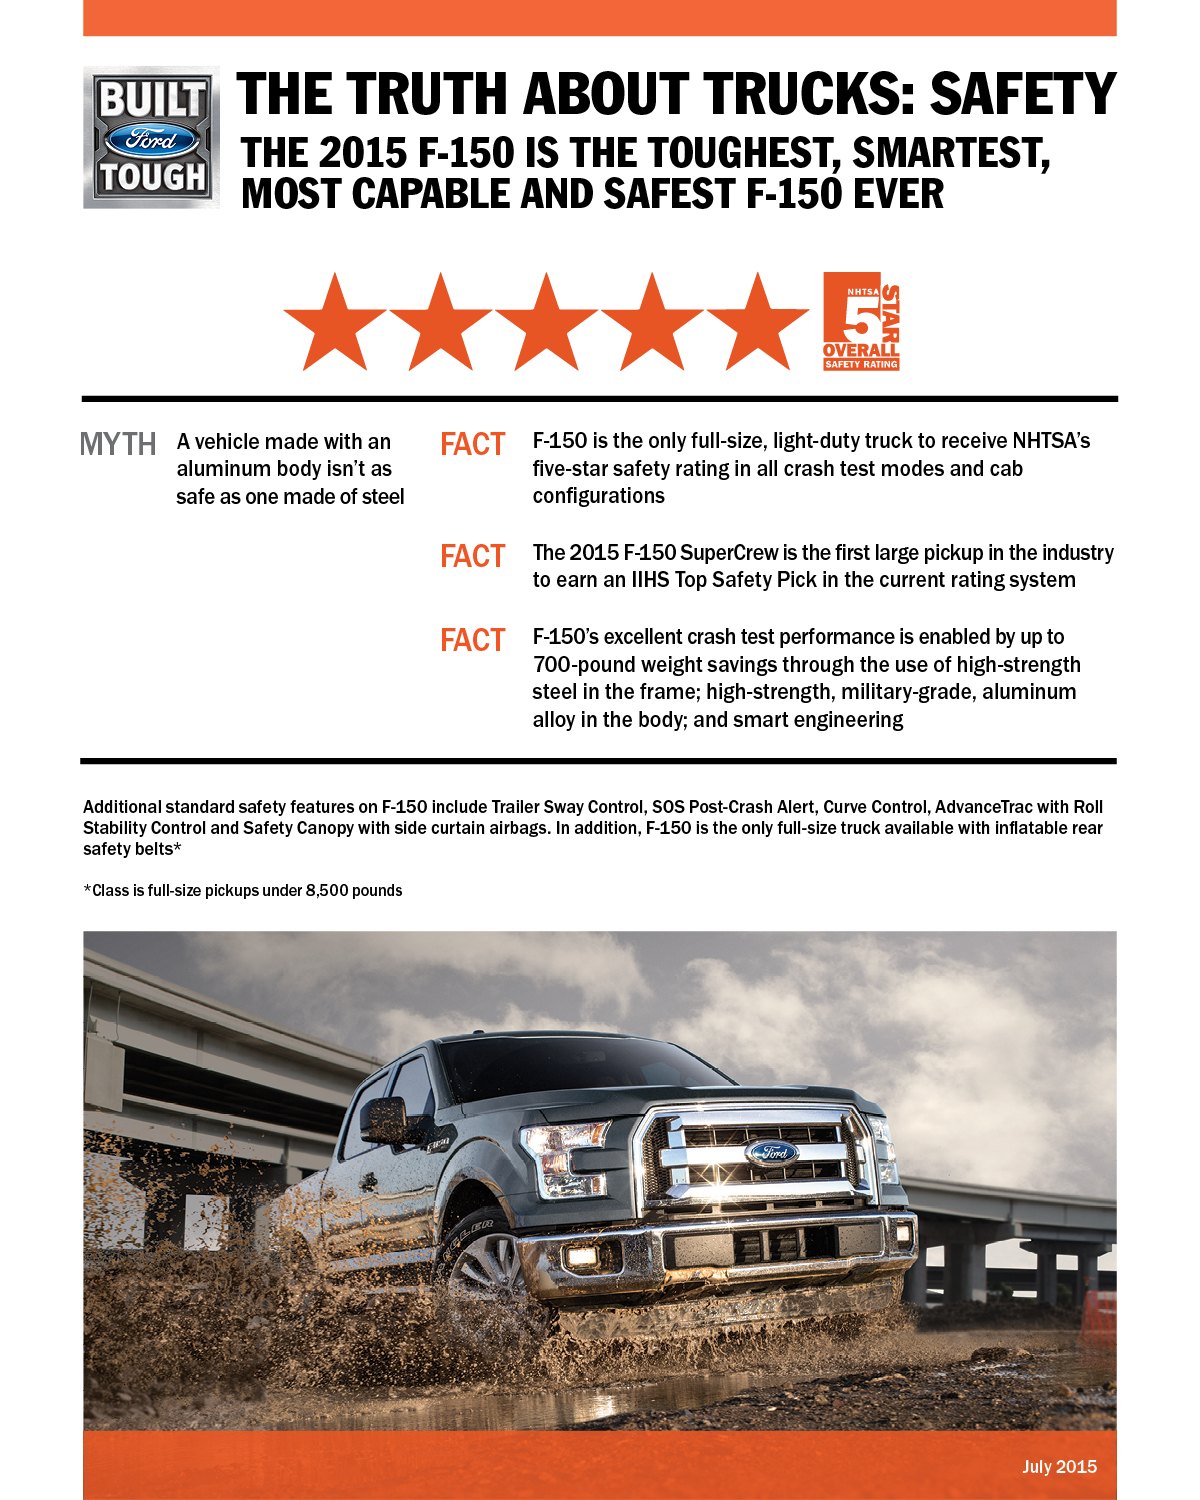 2015 ford f 150 leads light duty truck segment in safety ratings